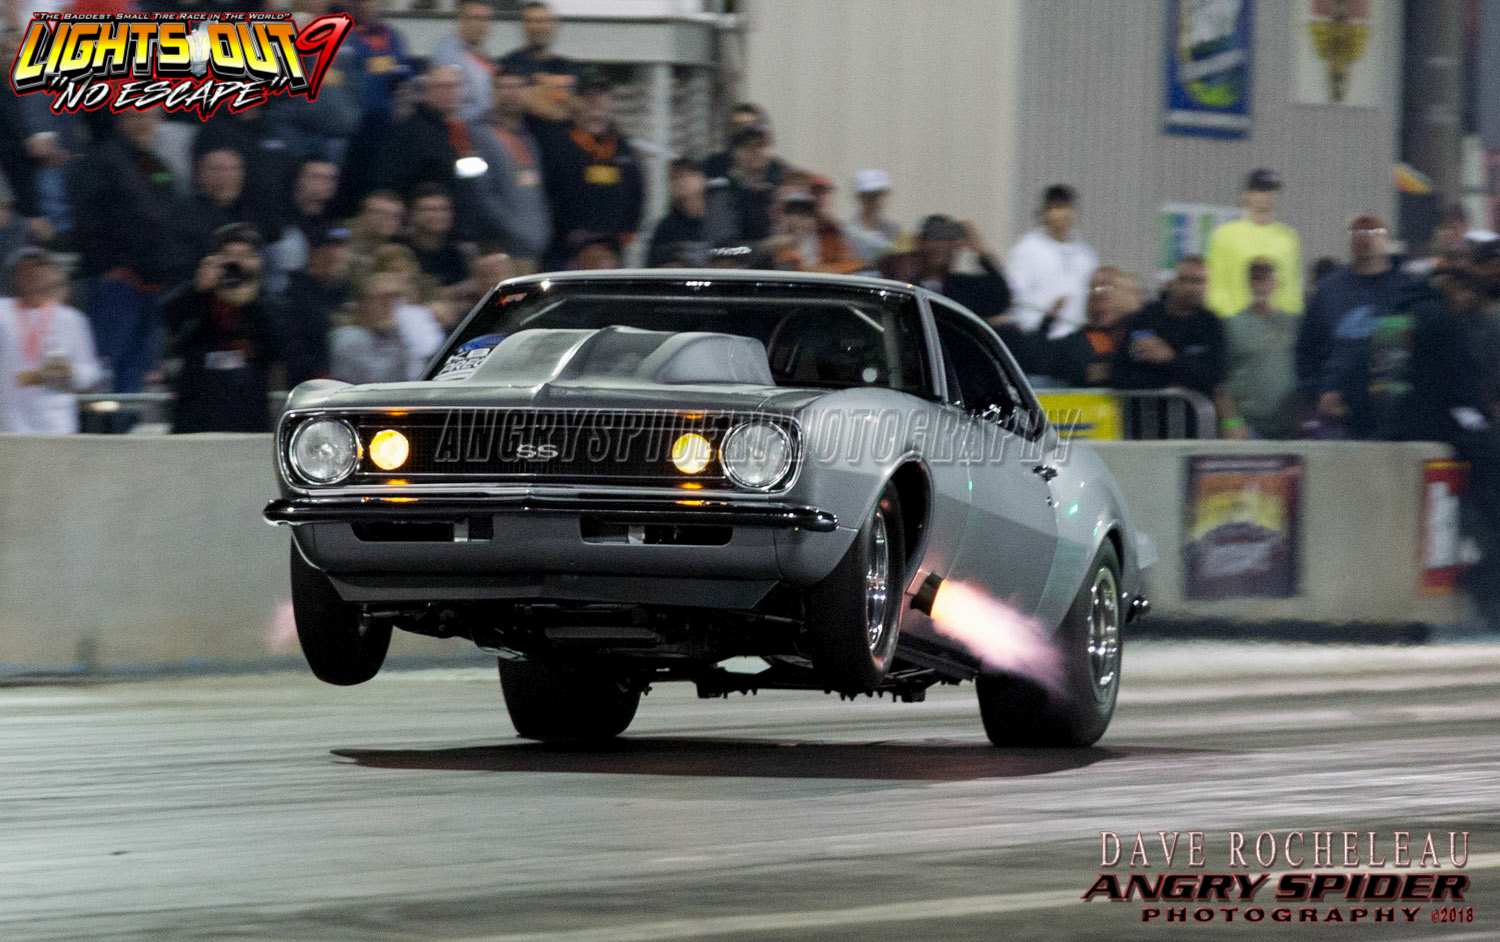 IMAGE: https://photos.smugmug.com/DragRacing/Lights-Out-9-Friday/i-w29pRMv/0/bb0ae18c/O/IMG_1403.jpg